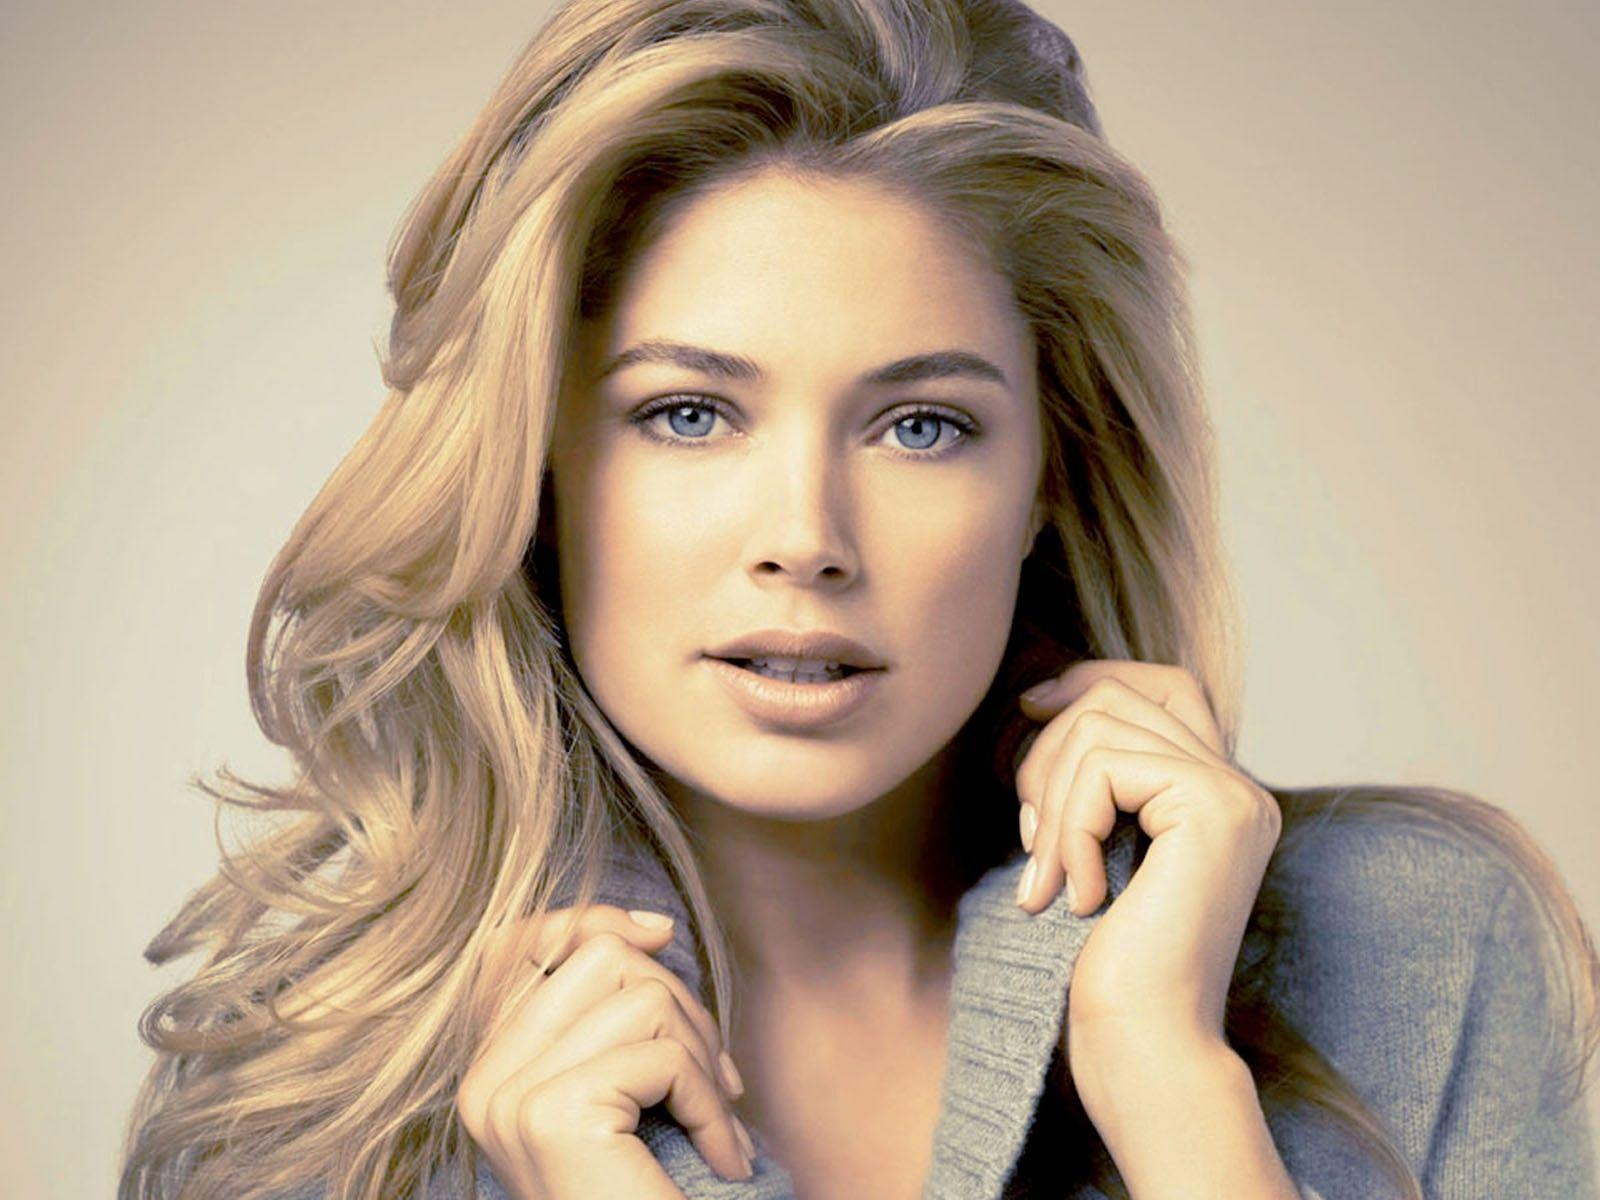 Doutzen Kroes Wallpaper HD Celebrities Doutzen Kroes Picture ...